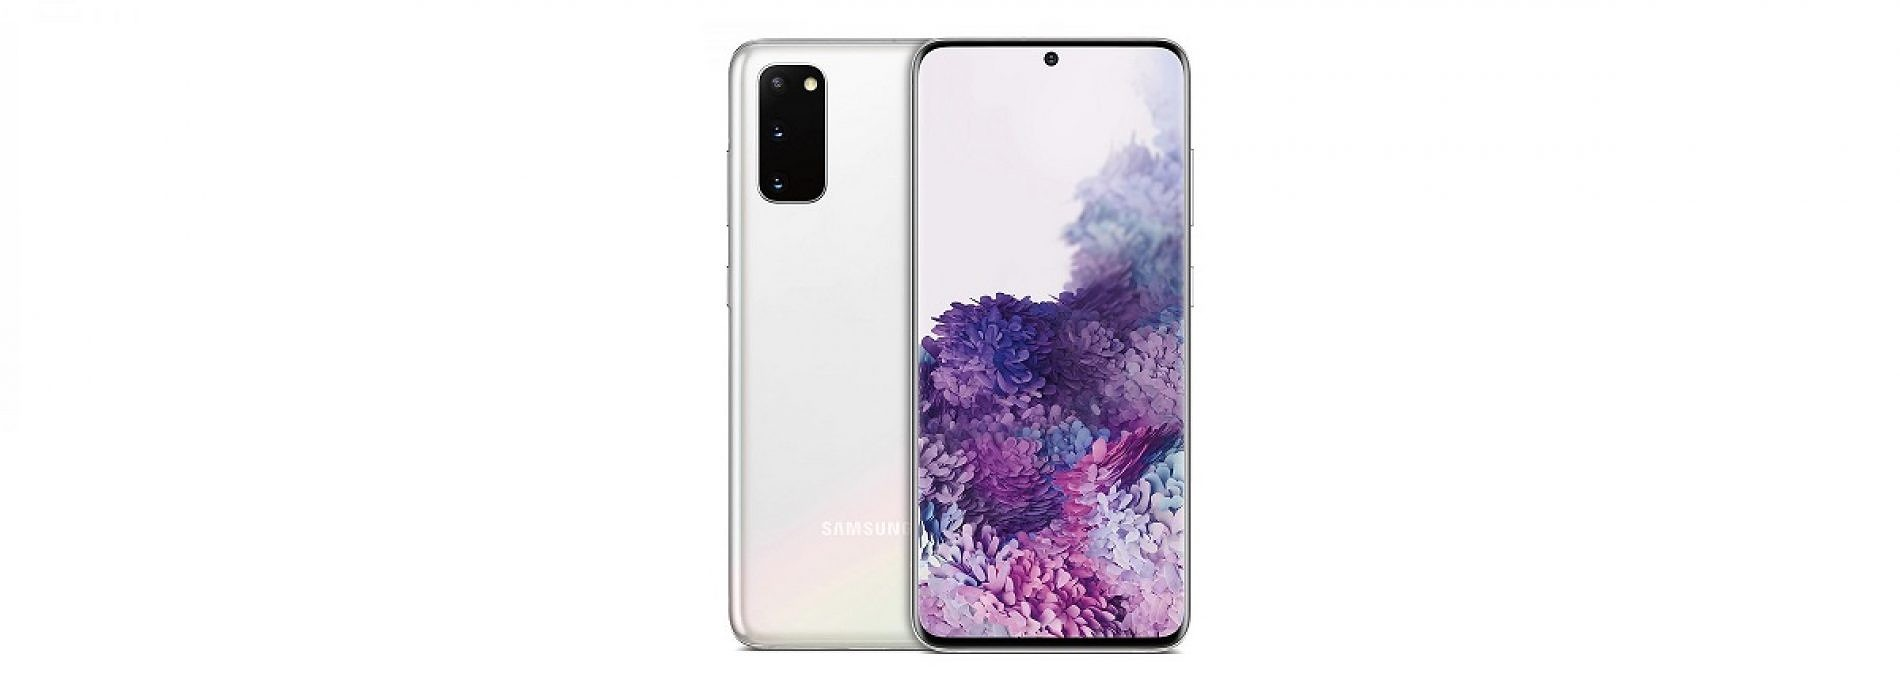 Samsung Galaxy S20 on Verizon is already getting updated to One UI 3 (Android 11)